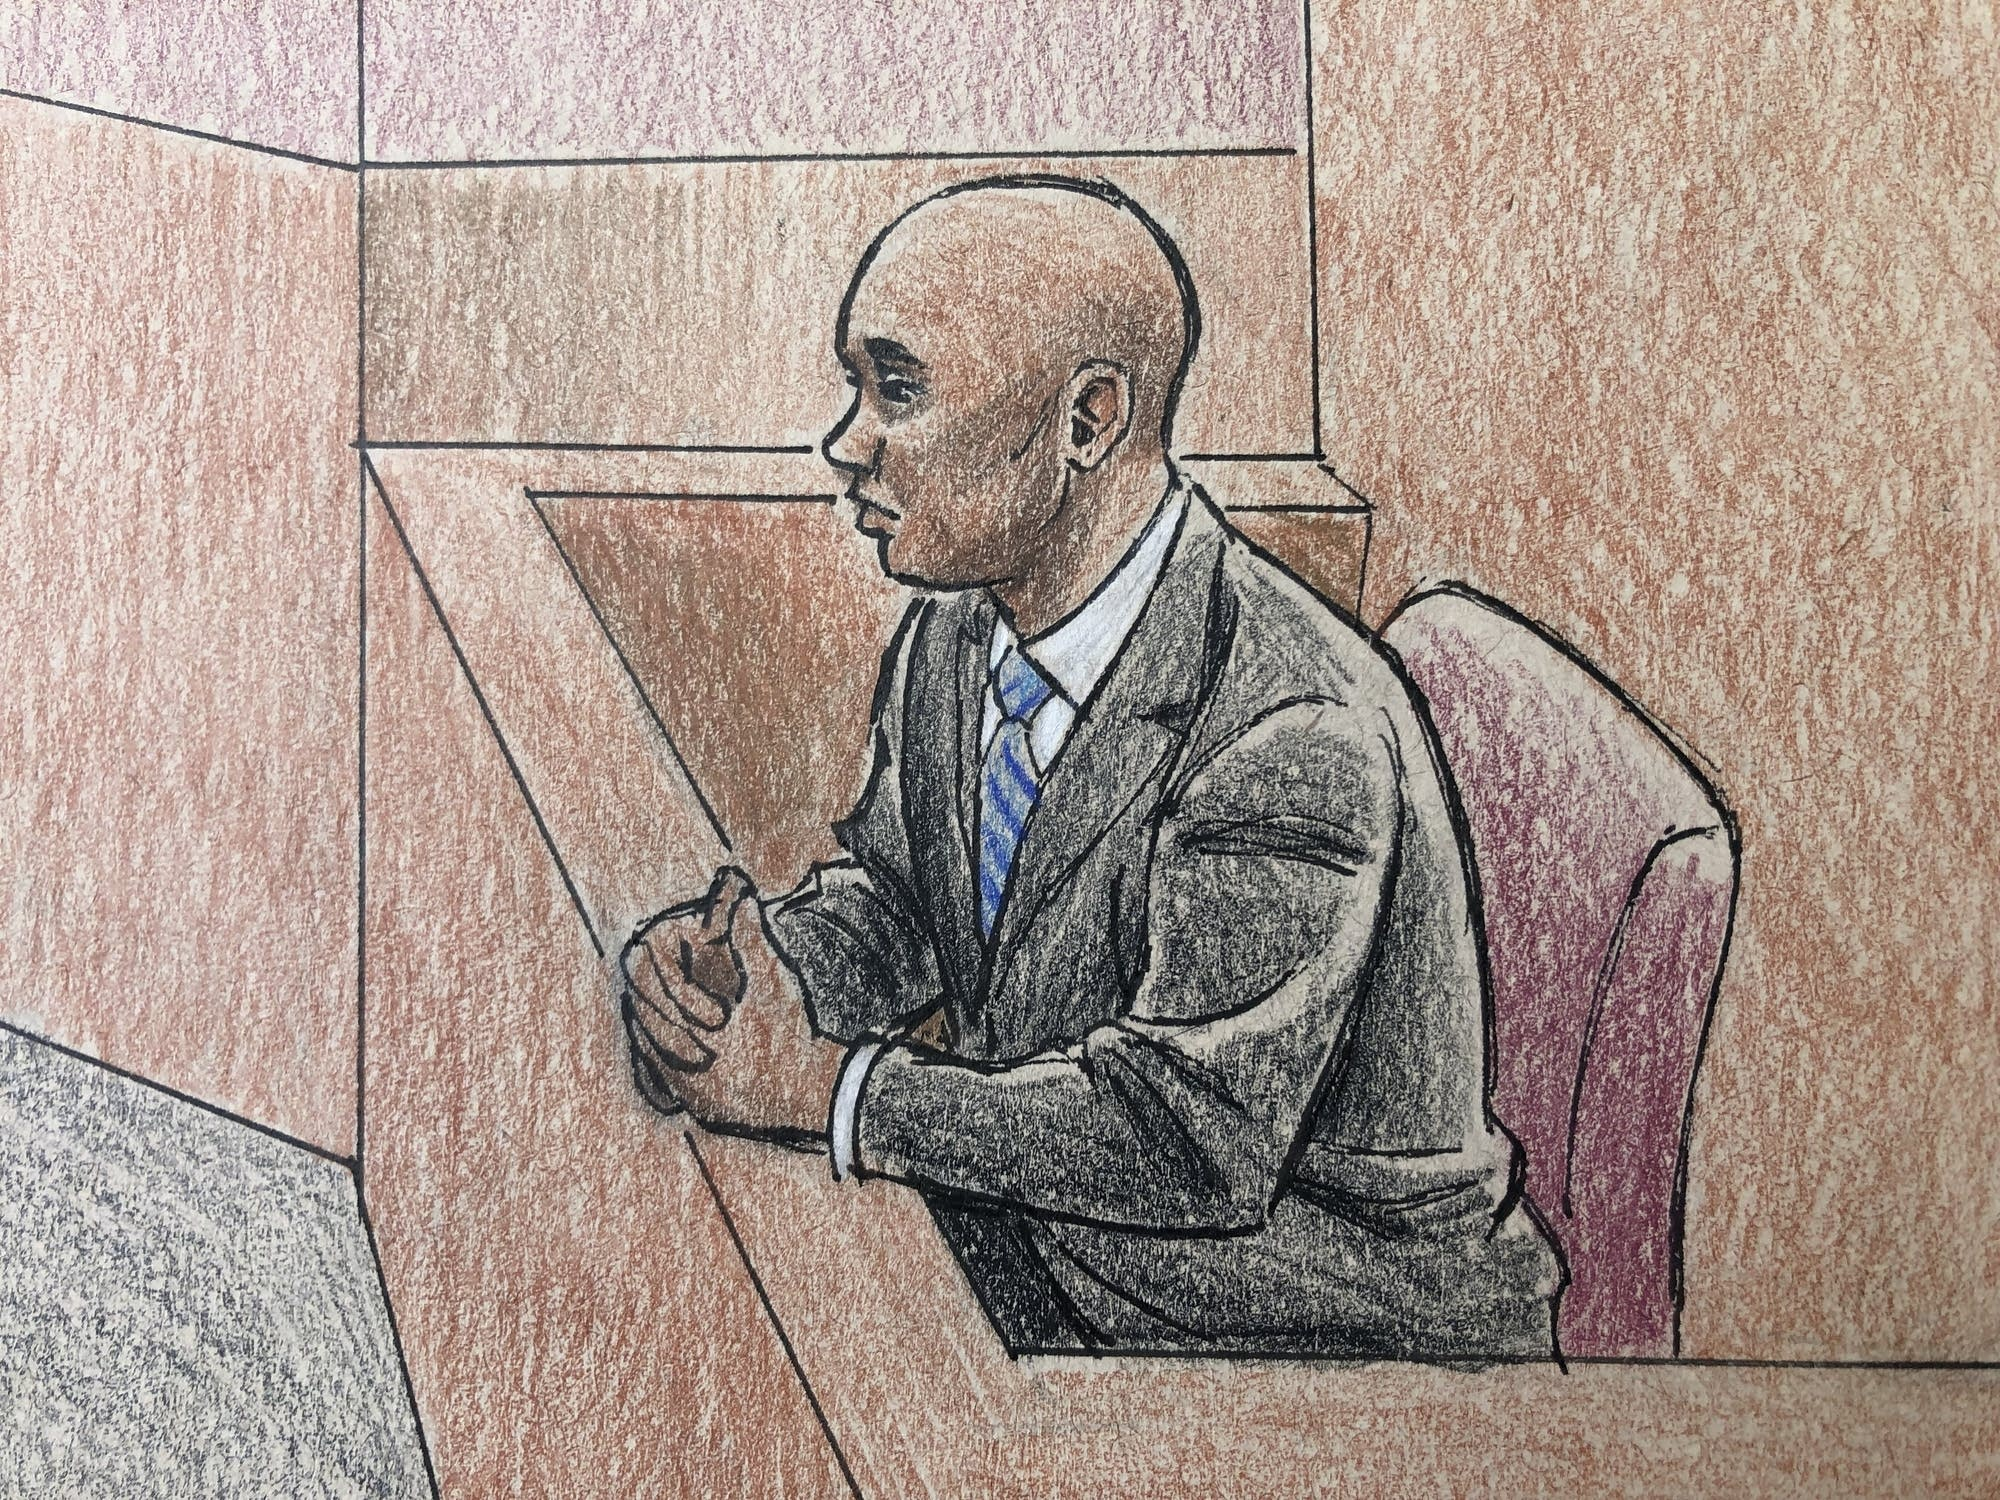 Former Minneapolis police officer Noor during his trial on April 26.